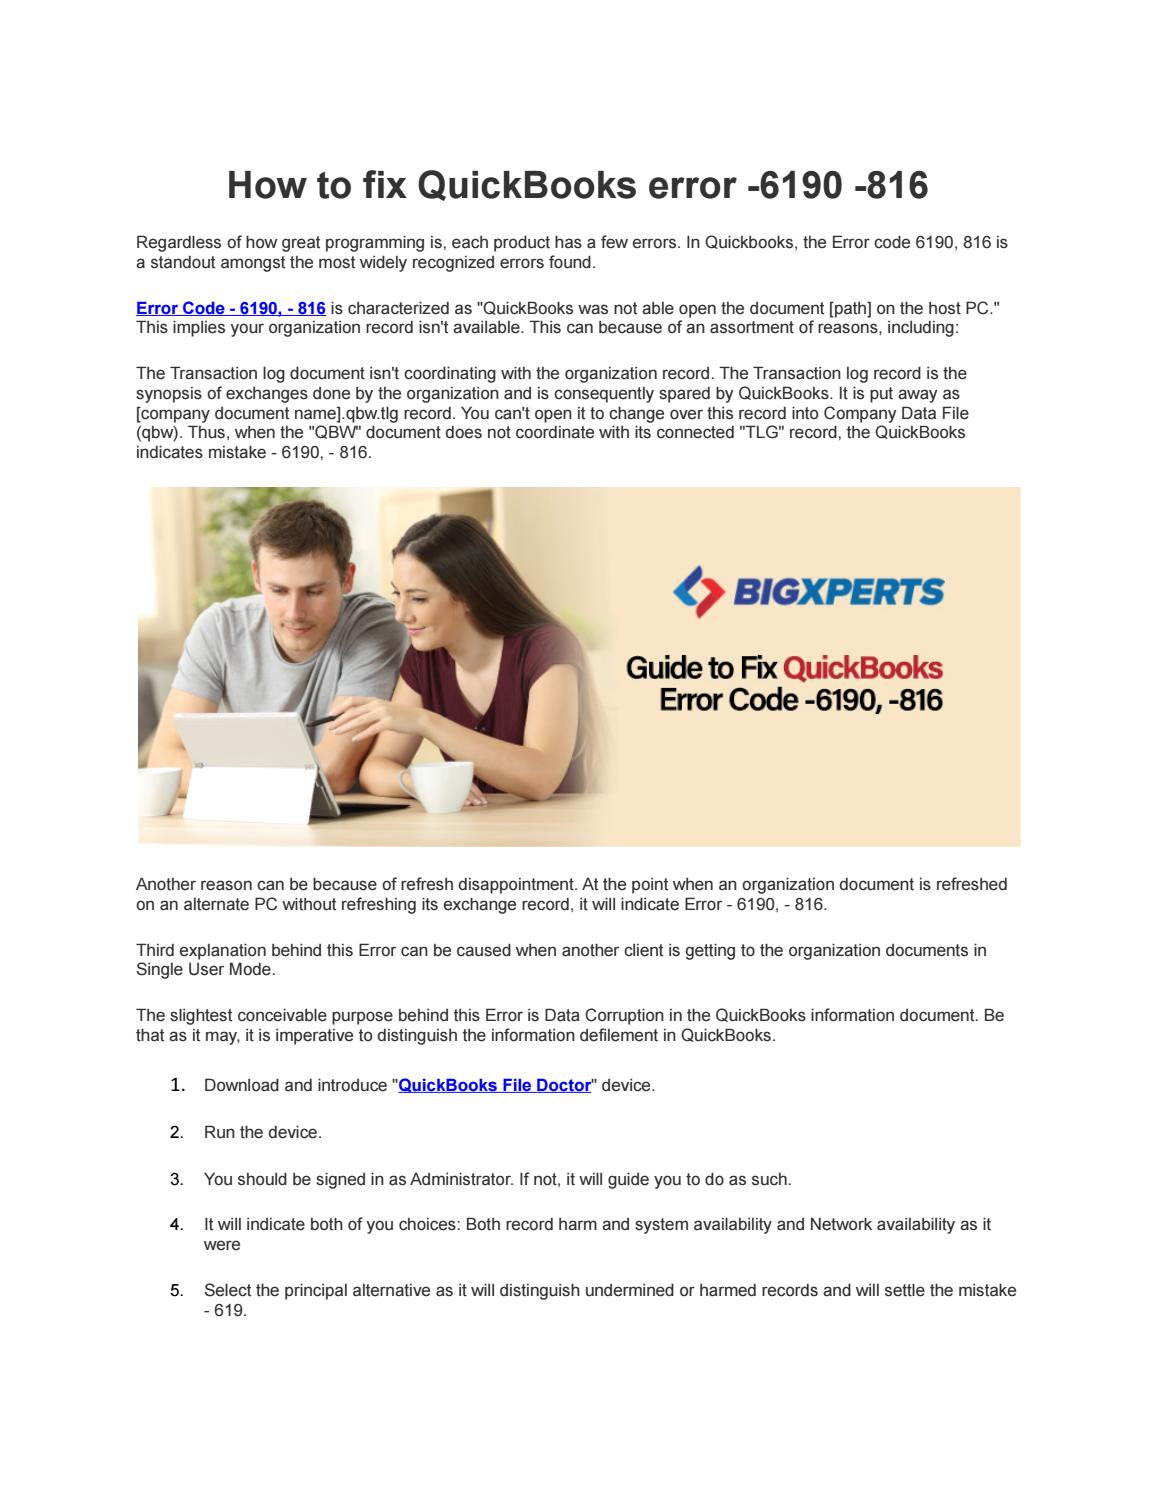 How to fix QuickBooks error -6190 -816 | Bigxperts by